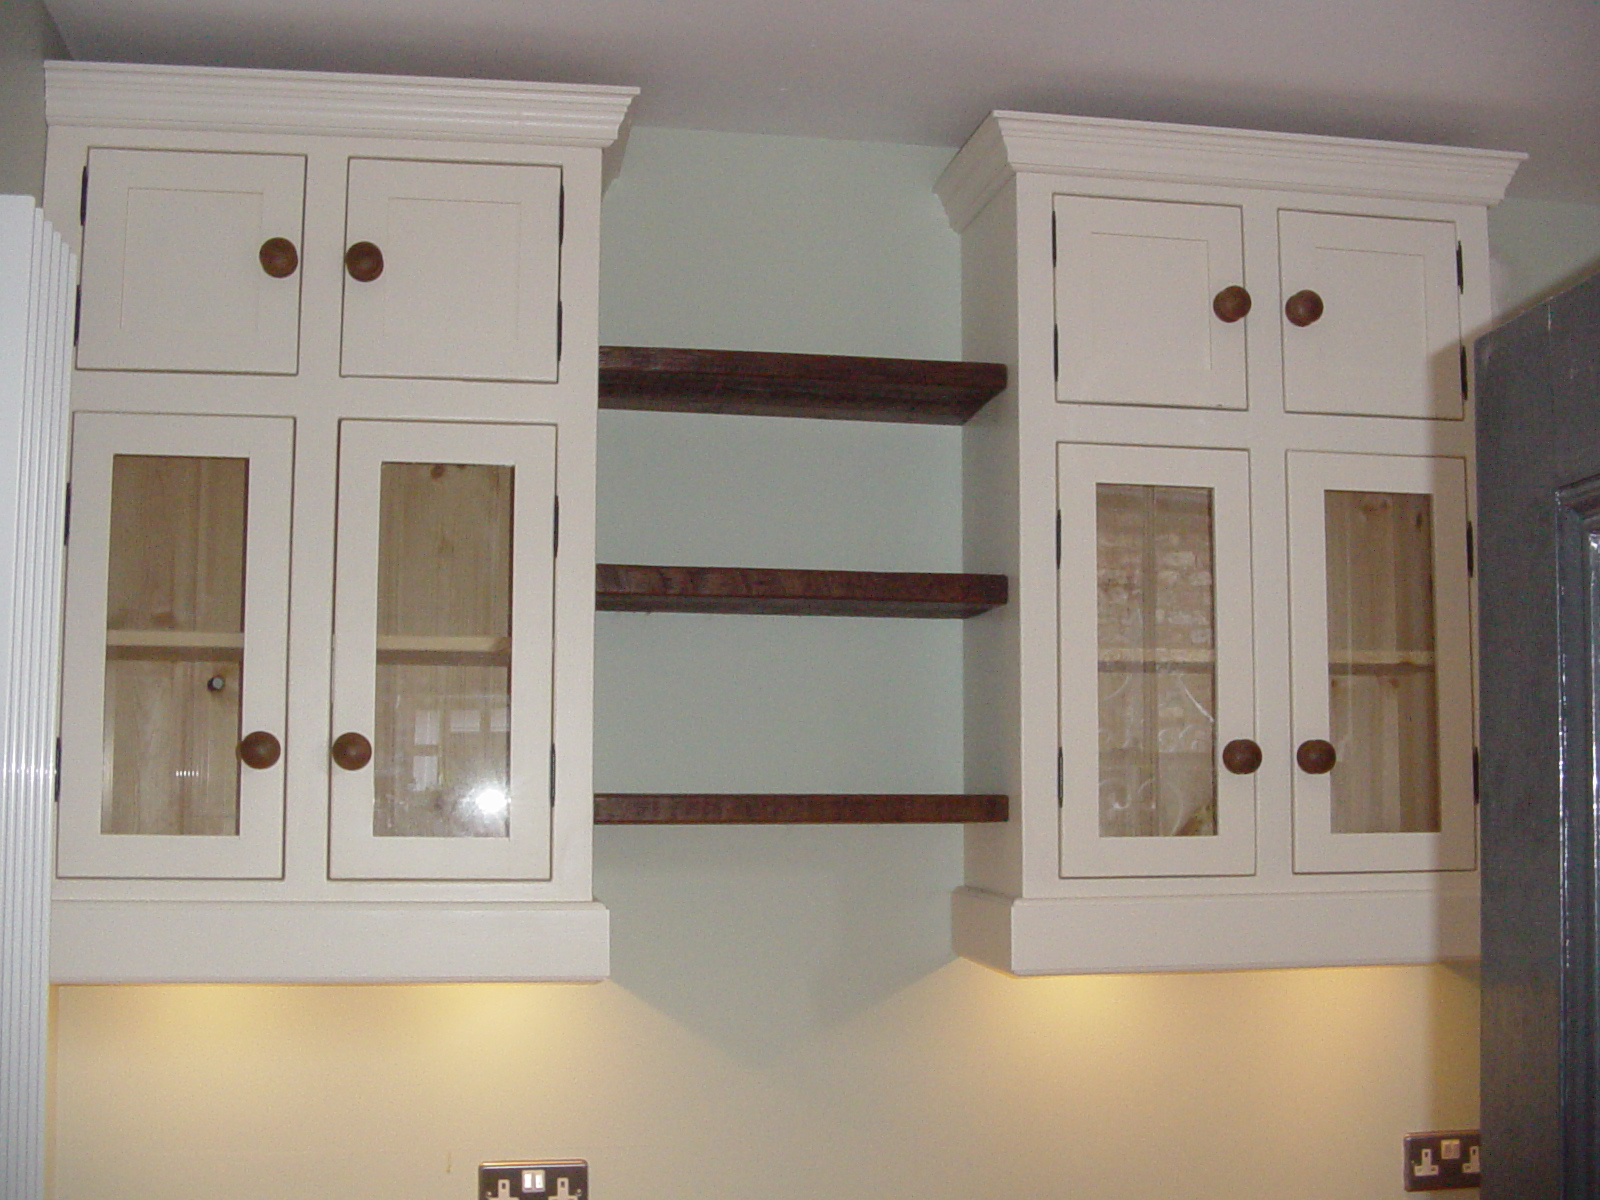 Cool Wall Units Etc Images - Simple Design Home - robaxin25.us